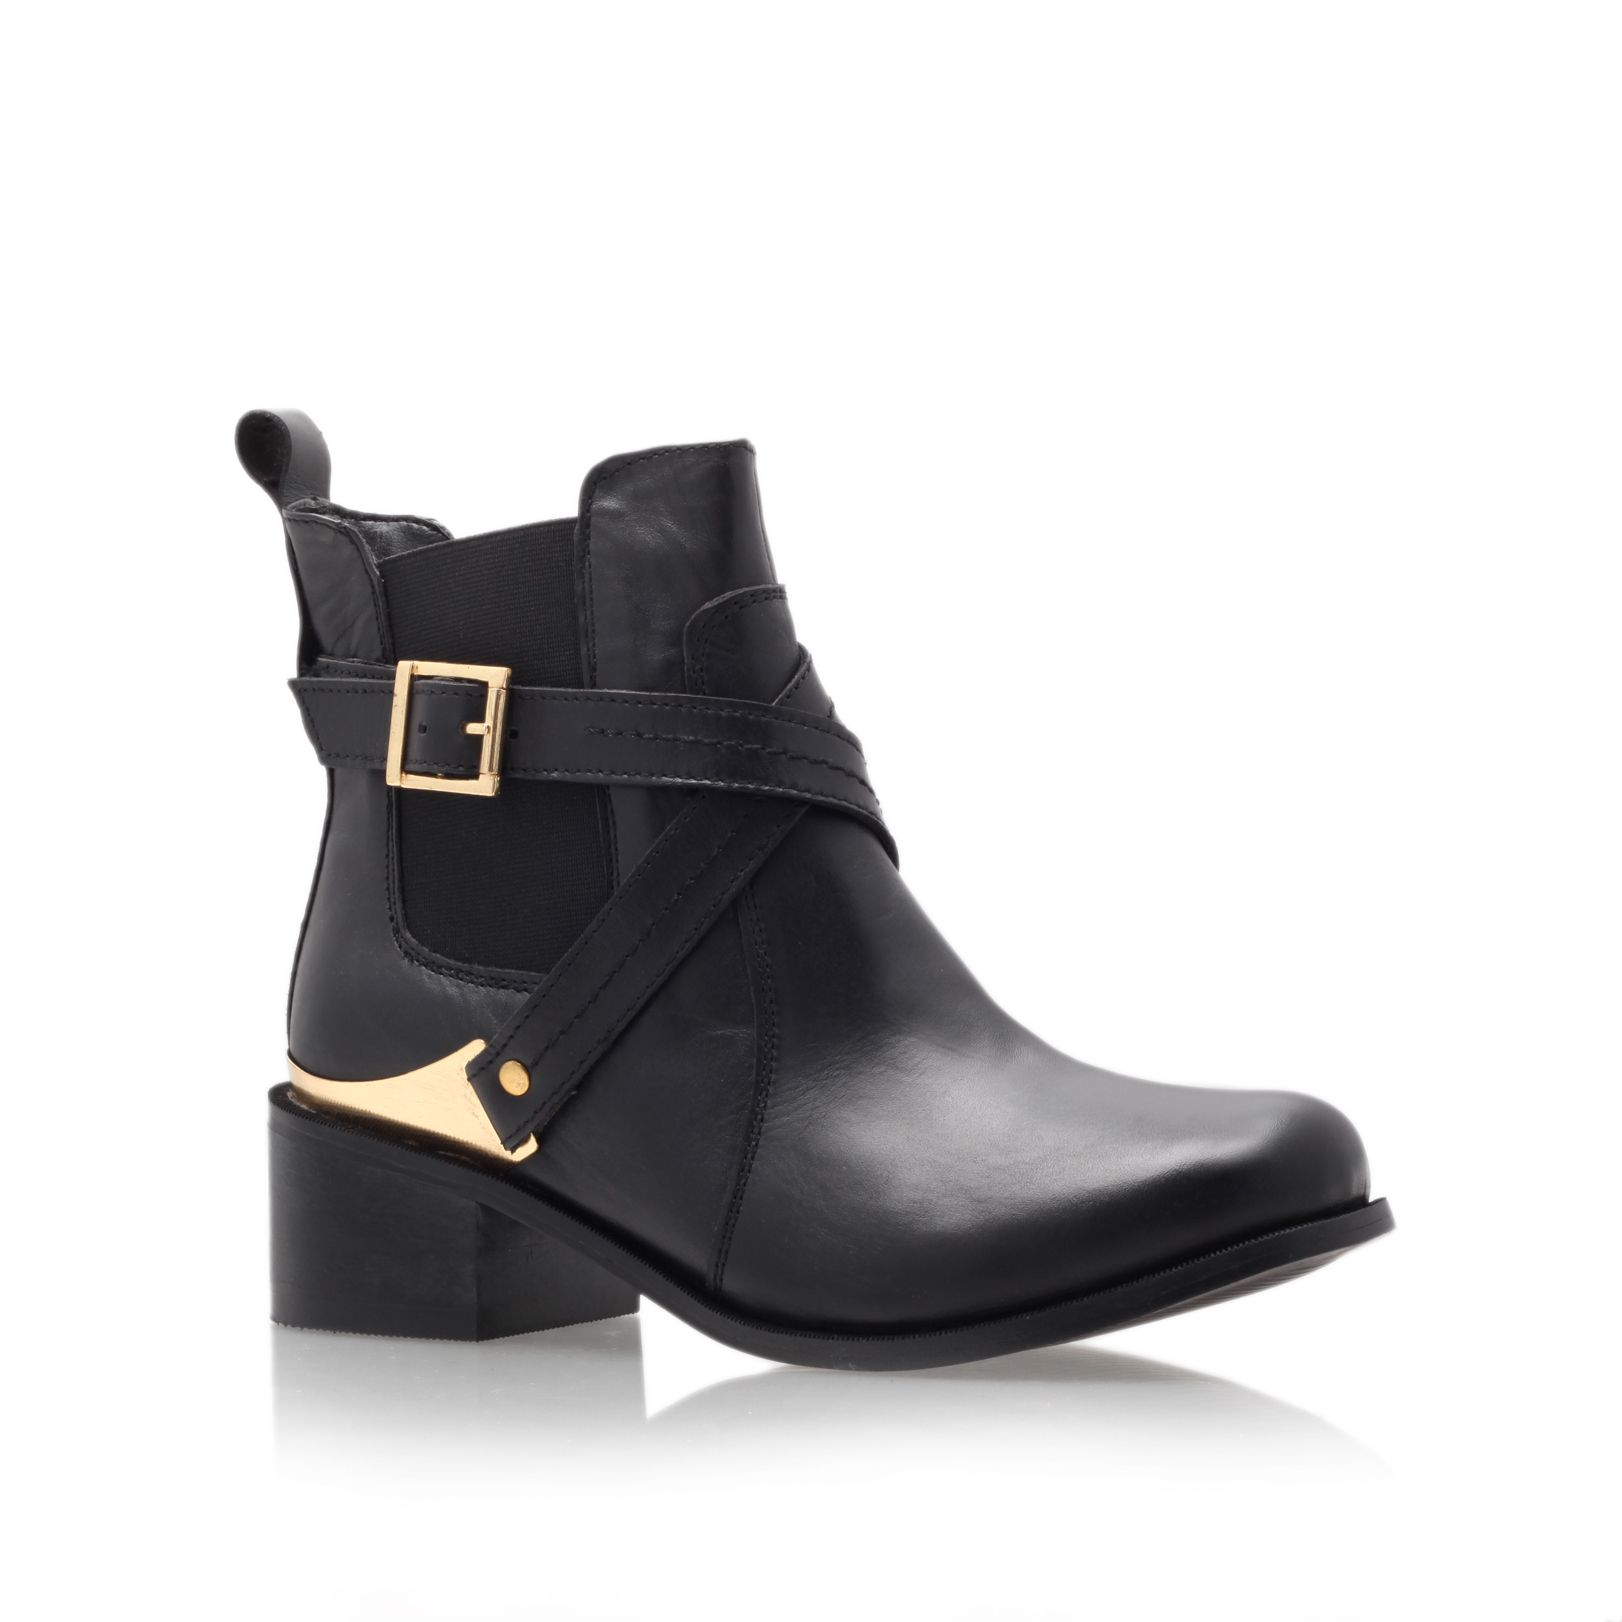 Teddy low heel ankle boots